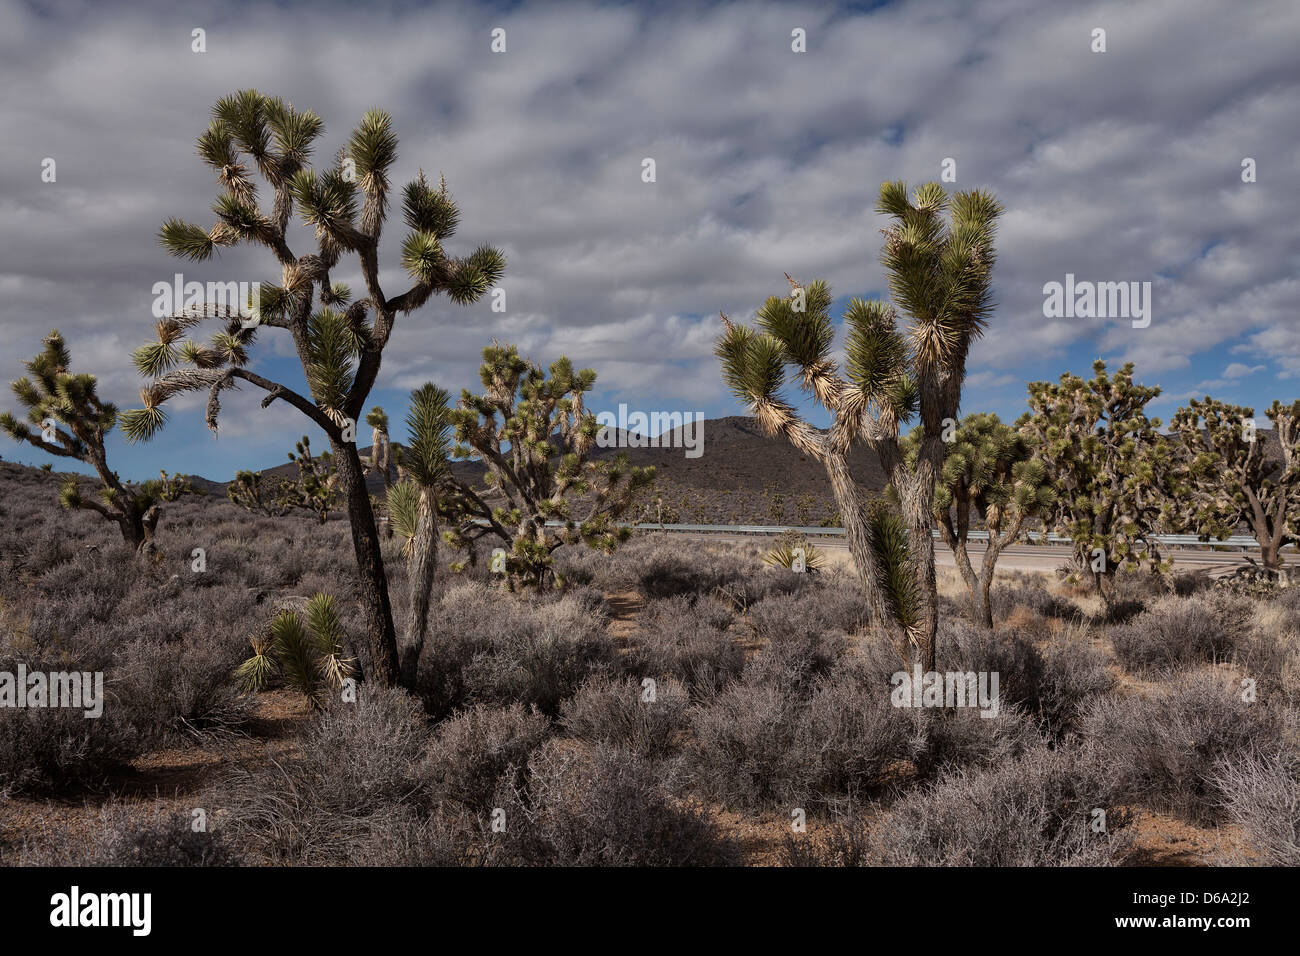 Joshua trees growing in dry landscape - Stock Image